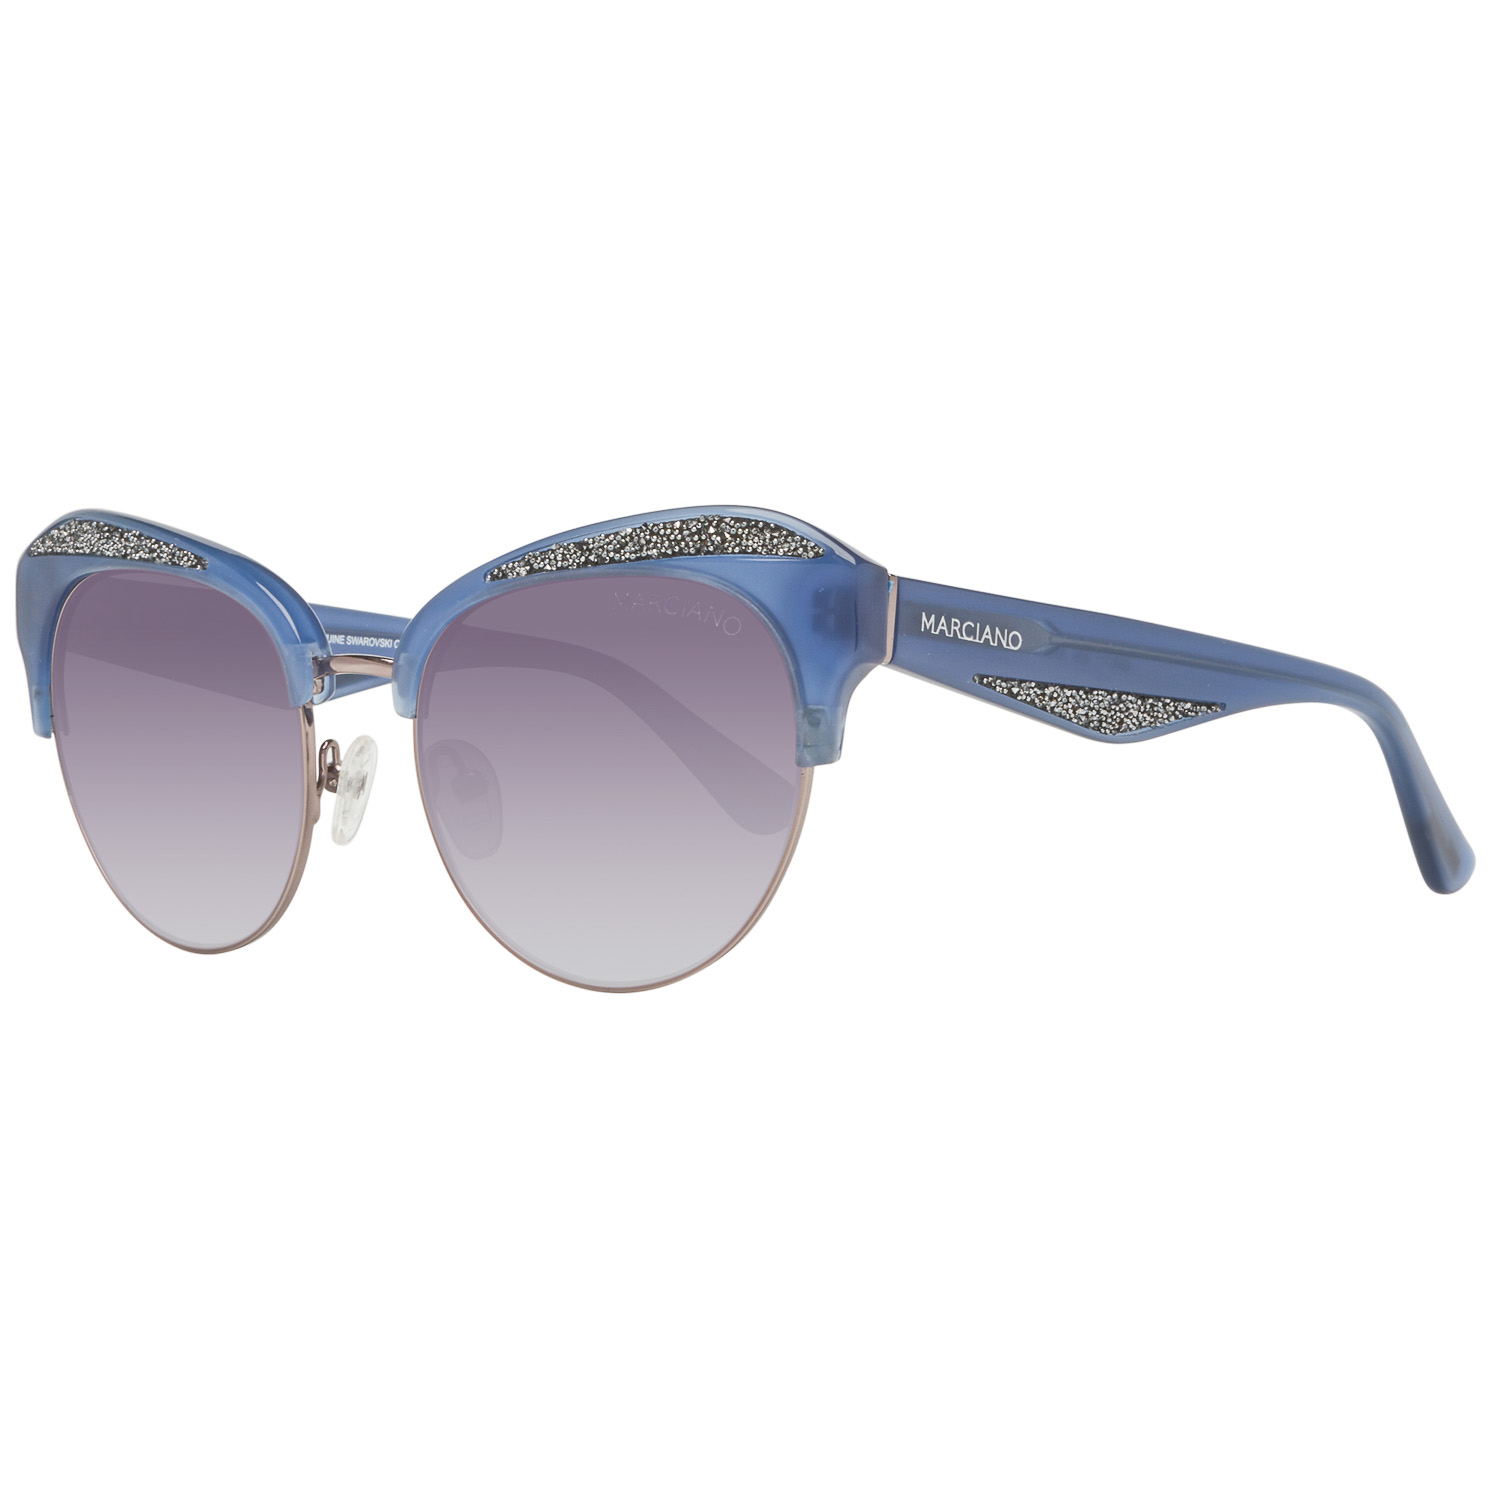 Guess by Marciano Sunglasses GM0777 90B 55 Silver